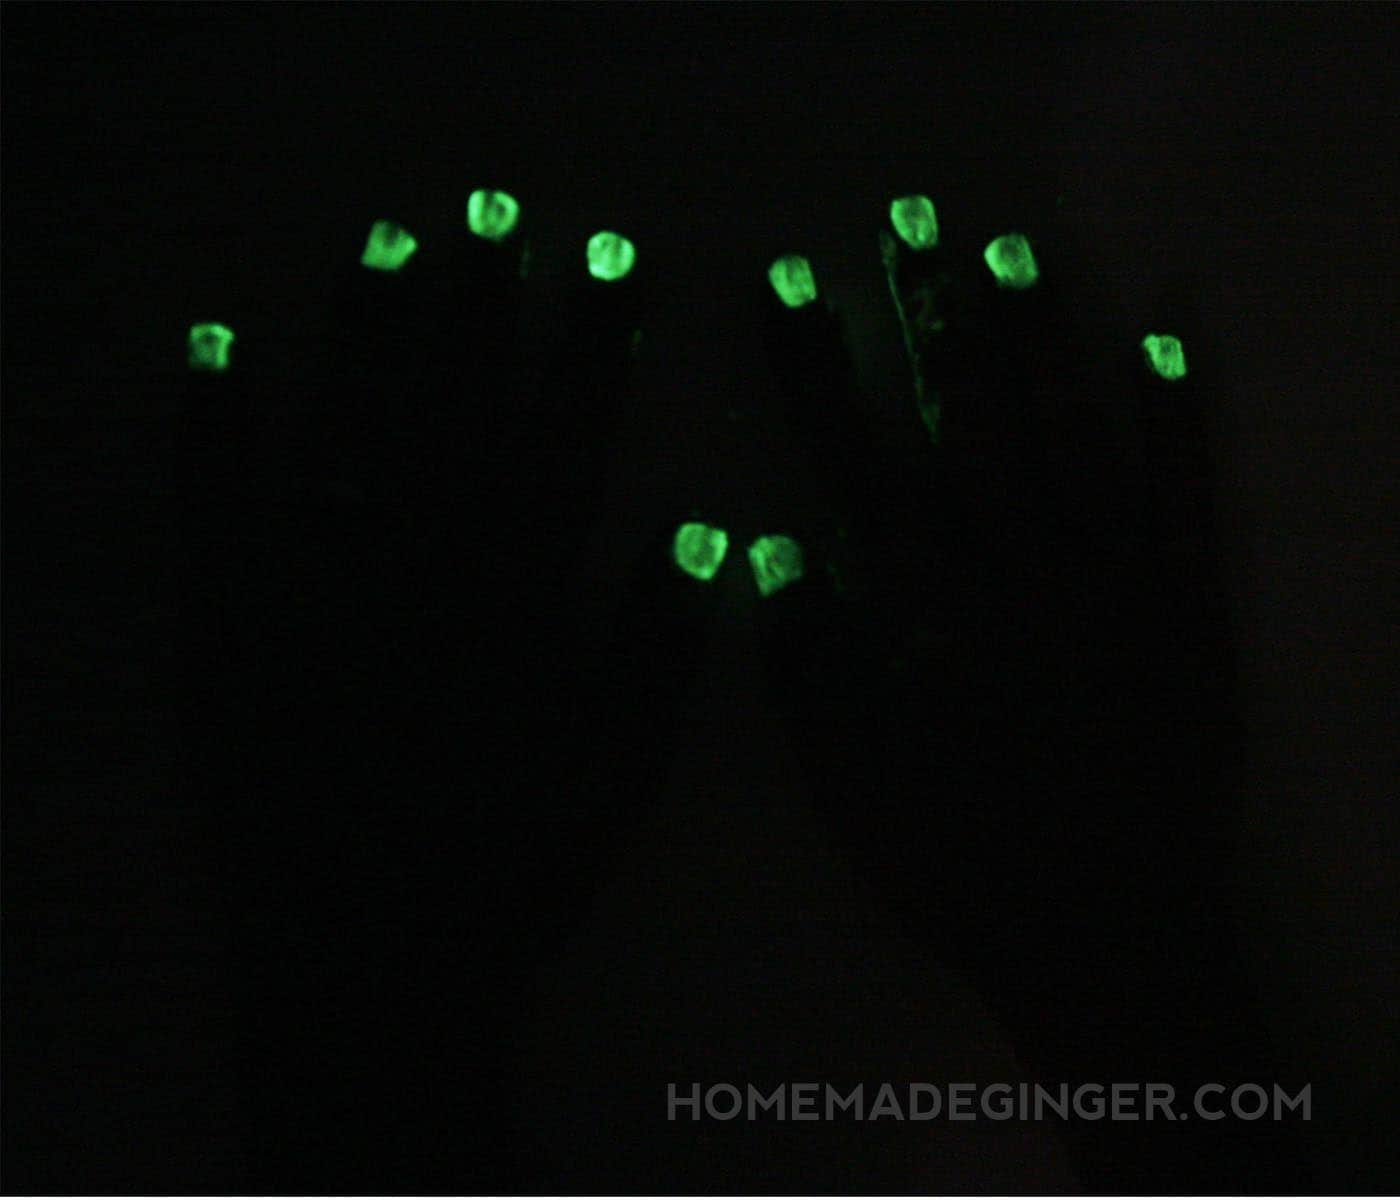 Learn how to make your own DIY glow in the dark nail polish! You can give any color of polish the ability to glow when the lights are low.